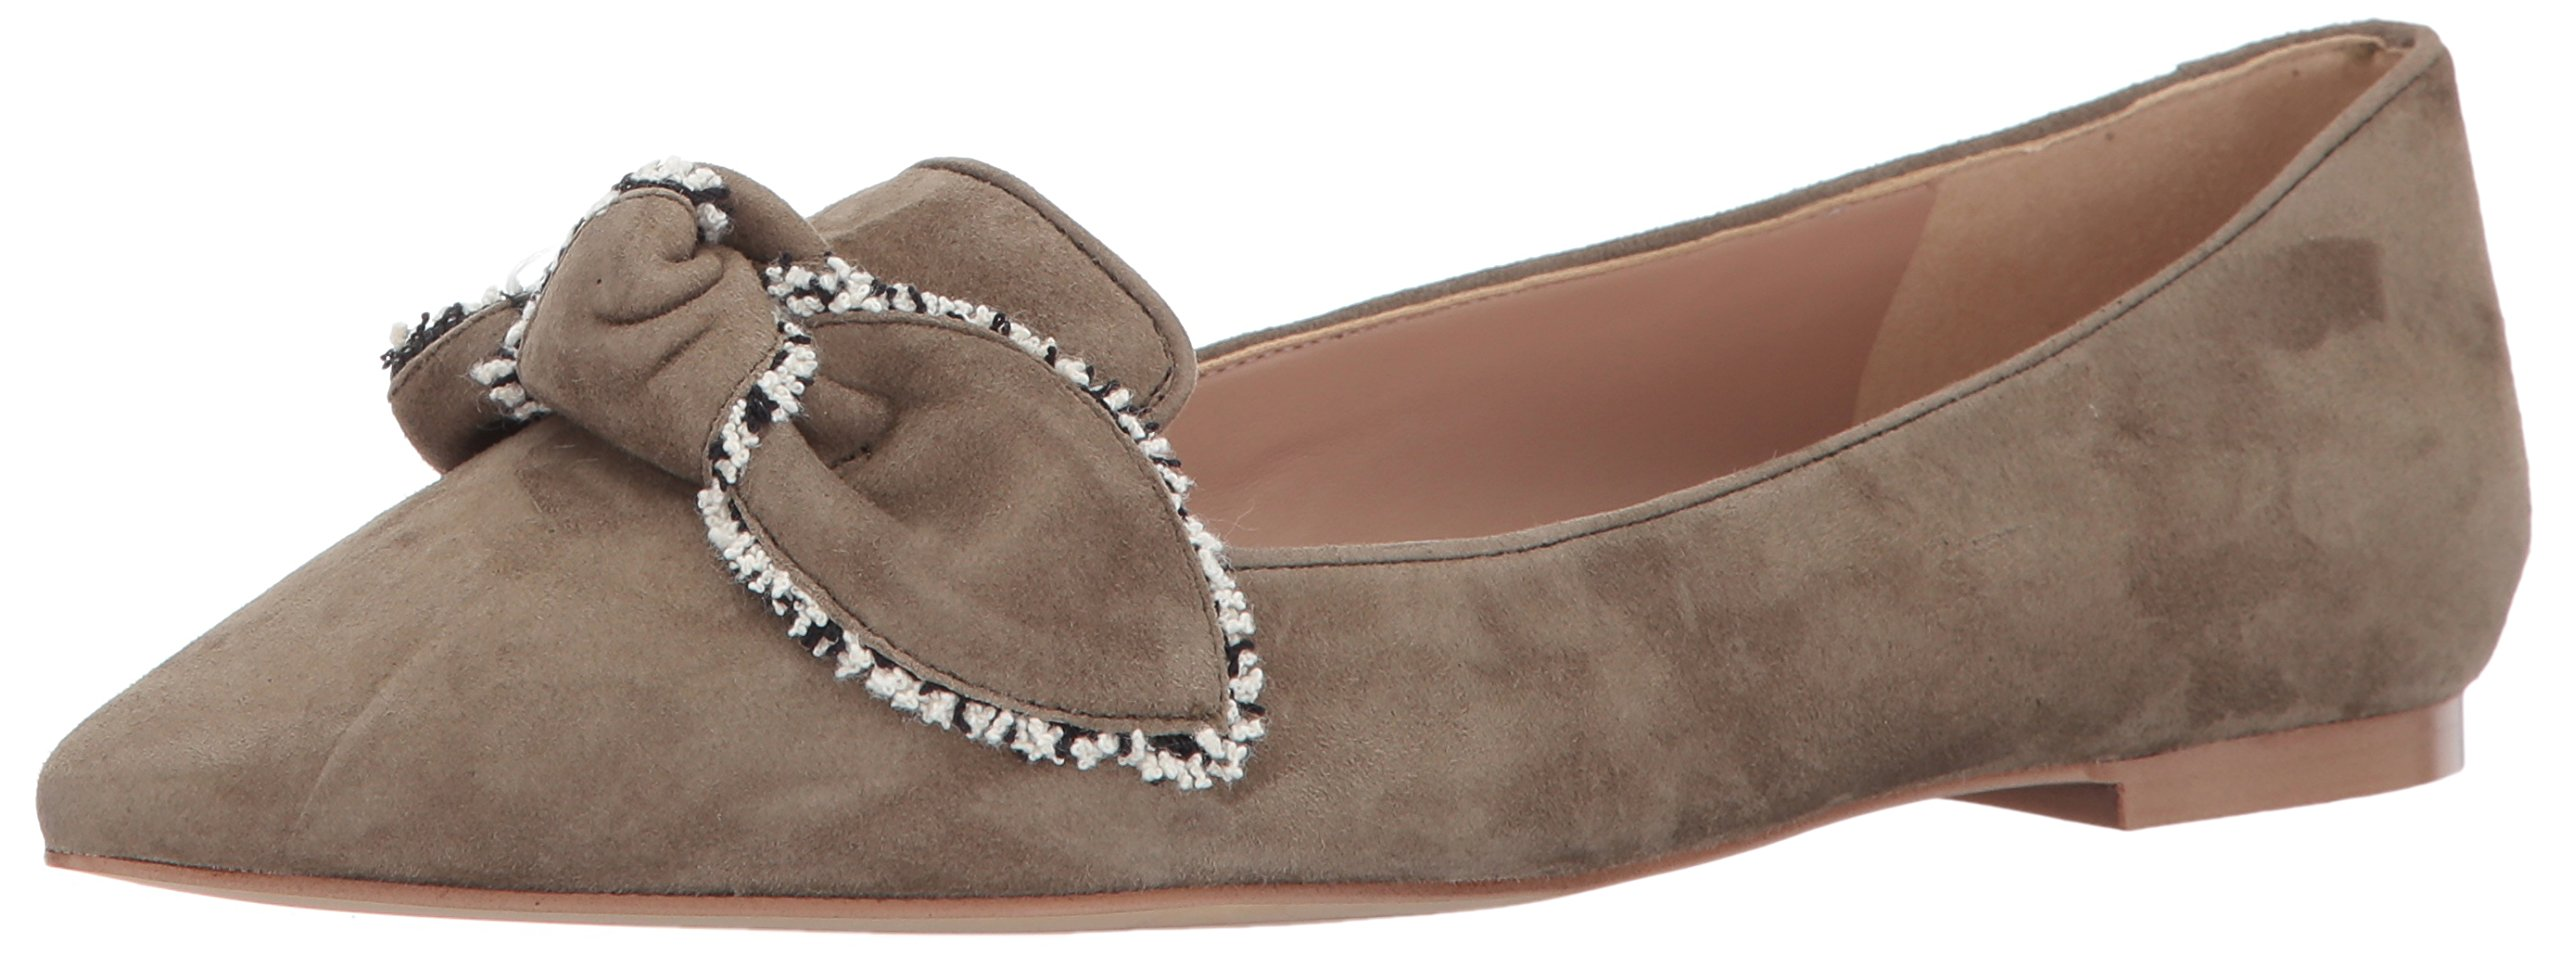 Sam Edelman Women's Rochester Ballet Flat, Moss Green Suede, 6.5 Medium US